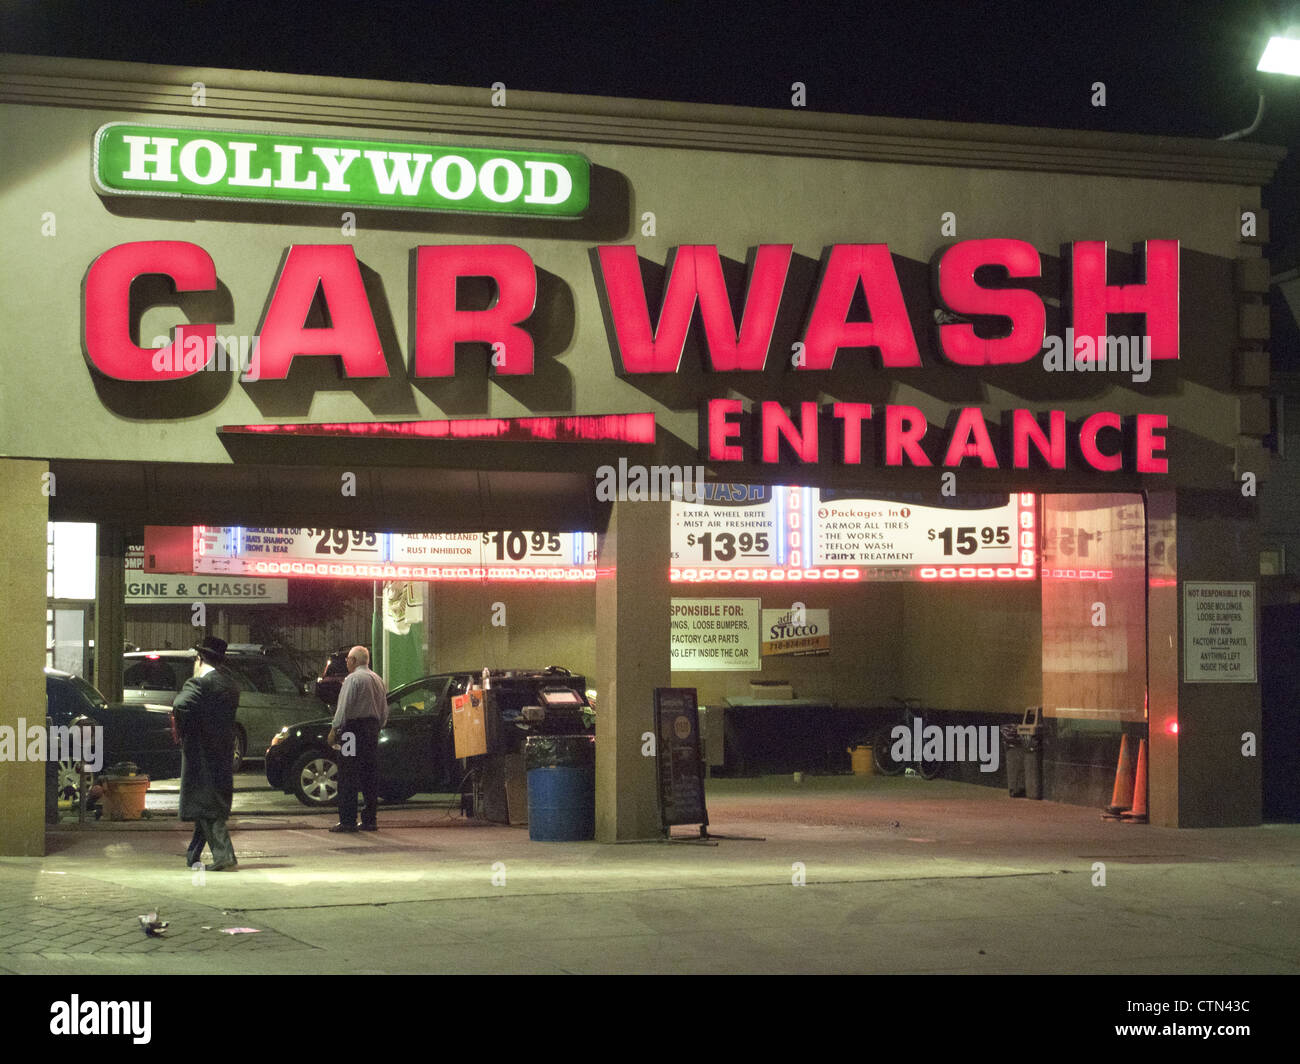 24 hour Hollywood Car Wash at Church and Coney Island Avenues in Brooklyn, NY. Stock Photo